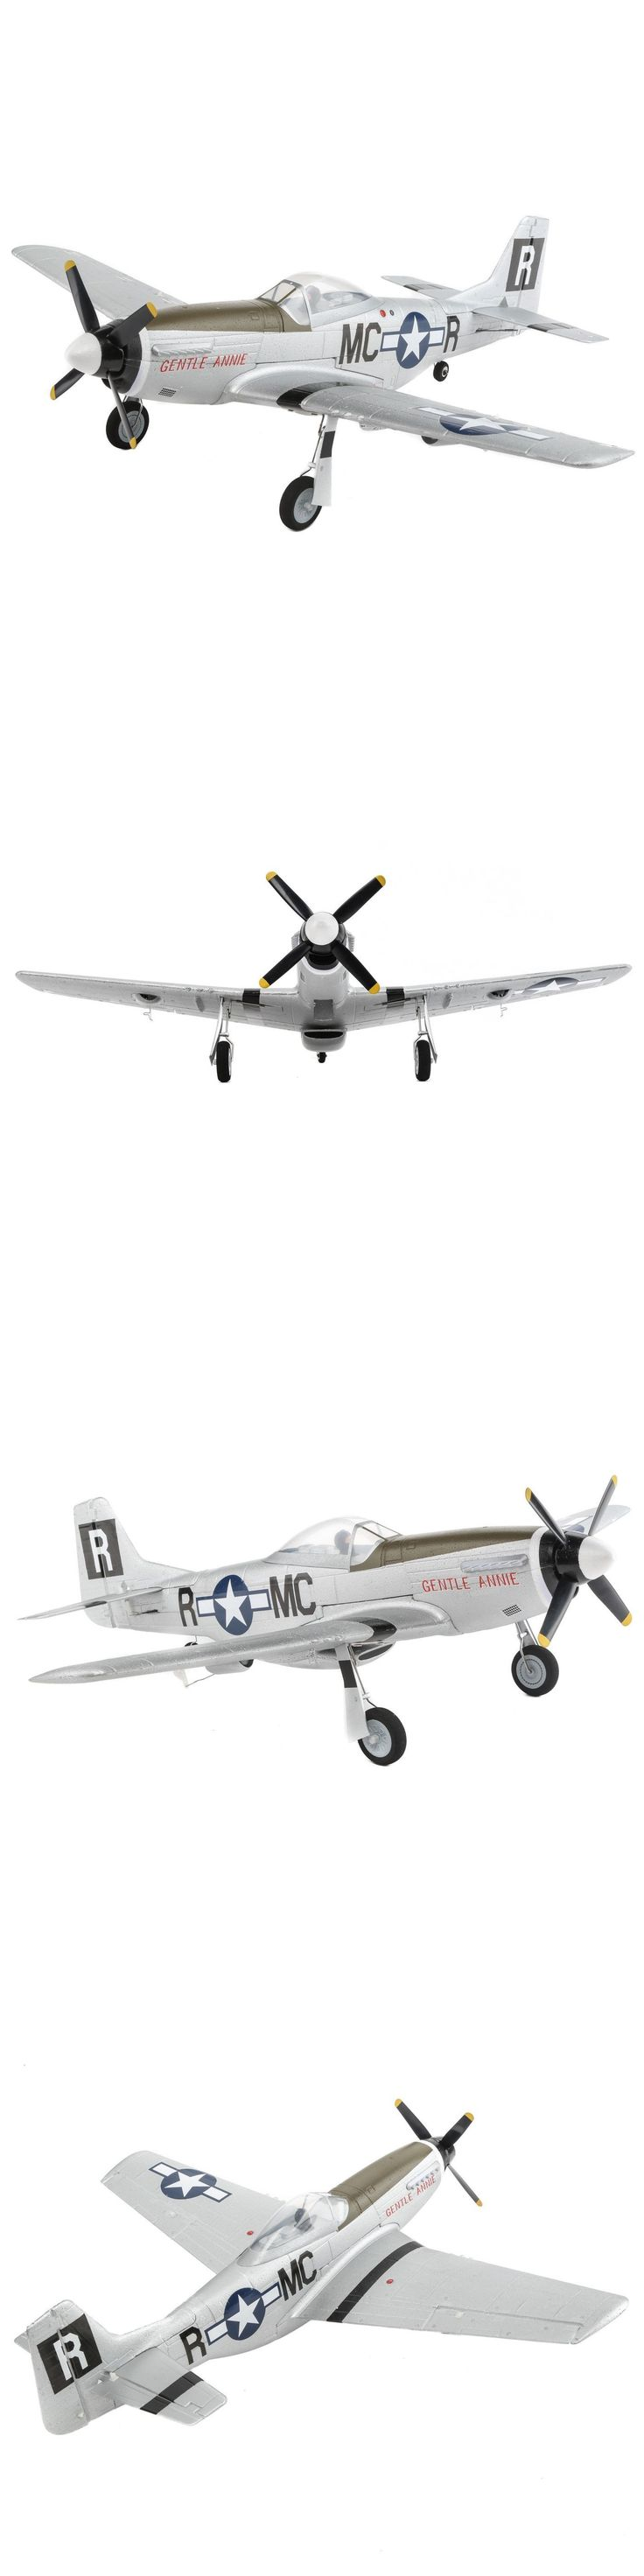 Other RC Model Vehicles and Kits 182186: E-Flite Umx P-51 Brushless Bnf Bind And Fly Basic Airplane As3x 2.4 Eflu3350 -> BUY IT NOW ONLY: $129.99 on eBay!